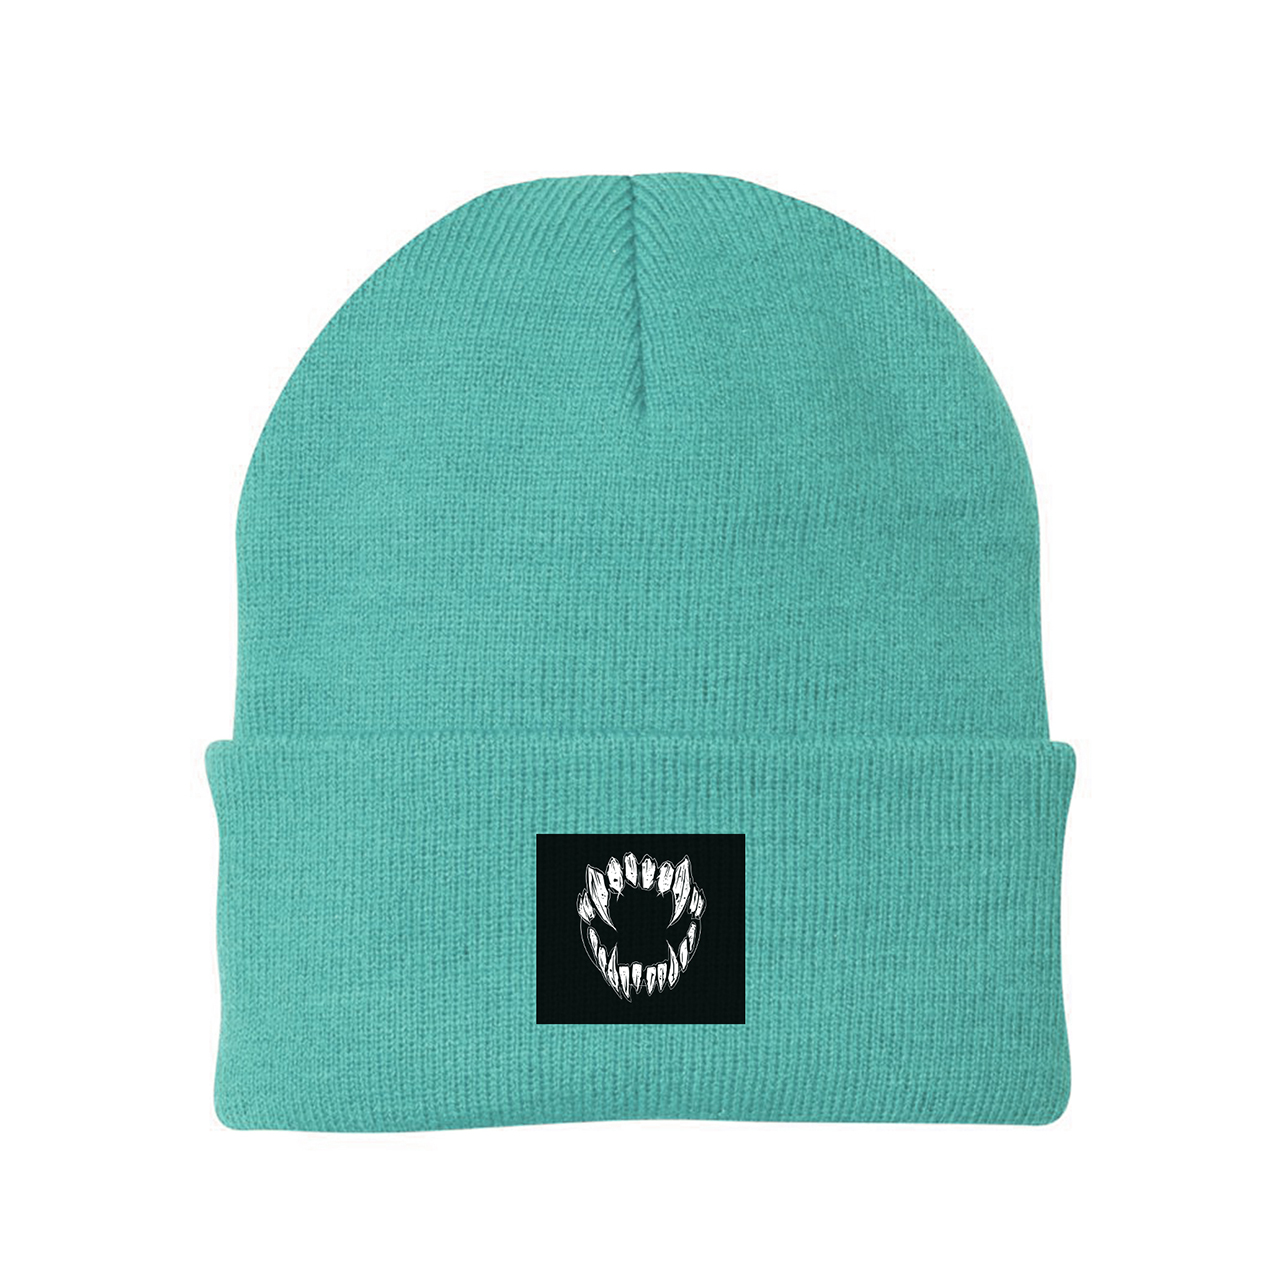 GHOSTKID Ghøstkid - Vampire Teeth Patch Beanie Beanie, mint green